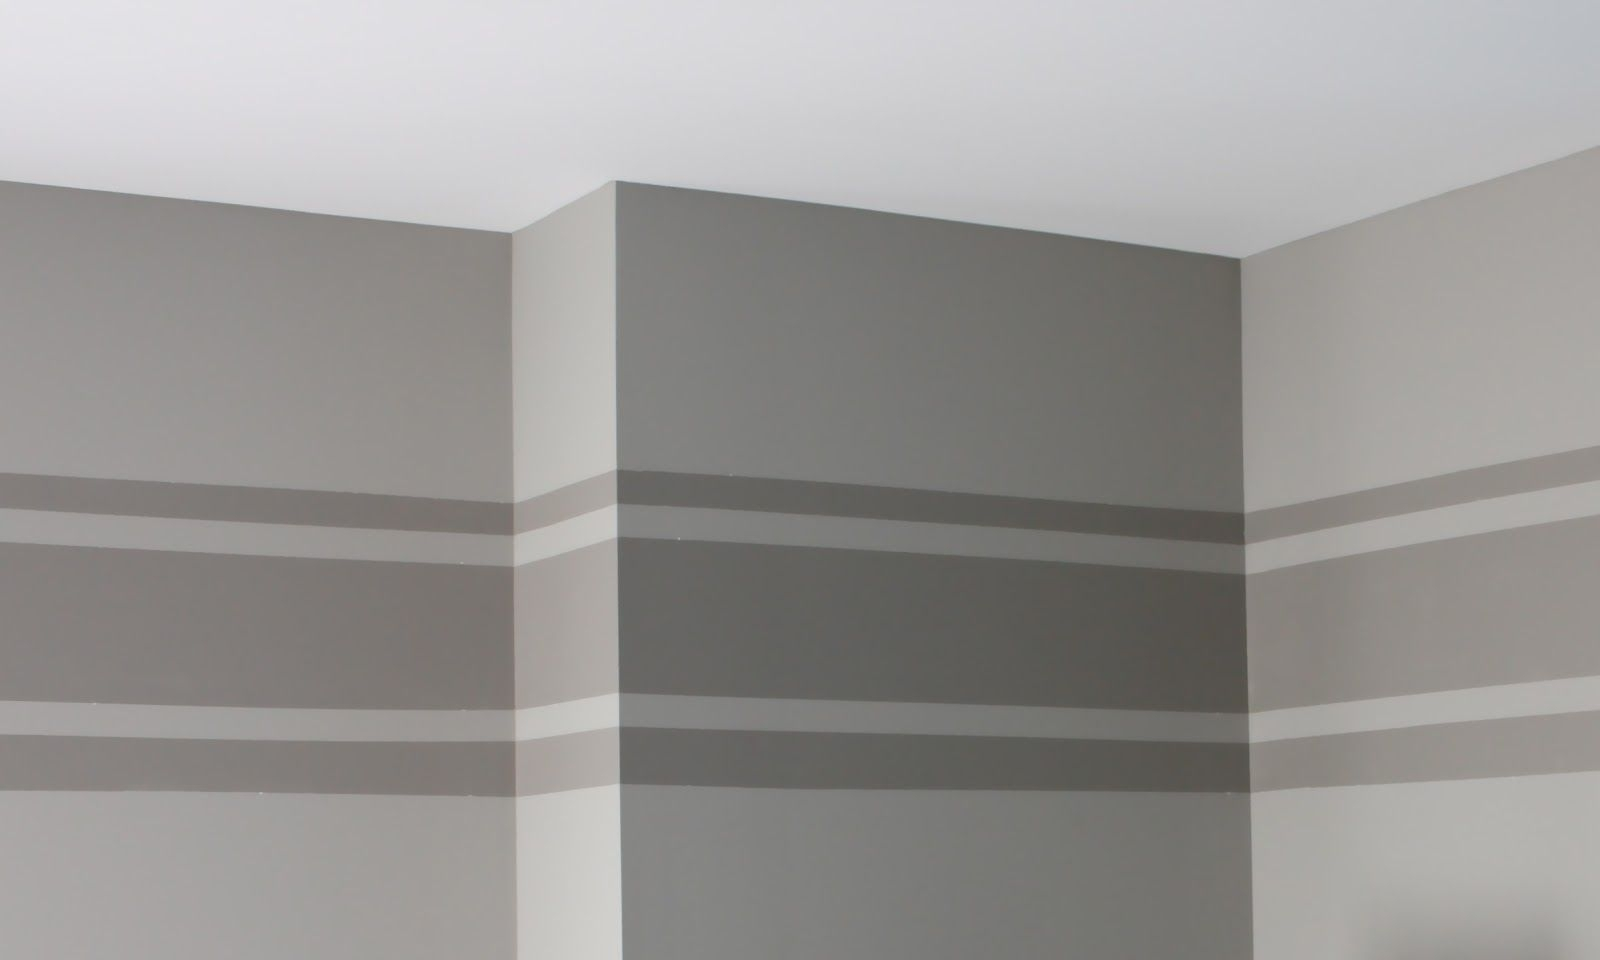 Horizontal Stripe On Wall | First, I Had The Room Painted With The For 2017 Horizontal Stripes Wall Accents (View 5 of 15)